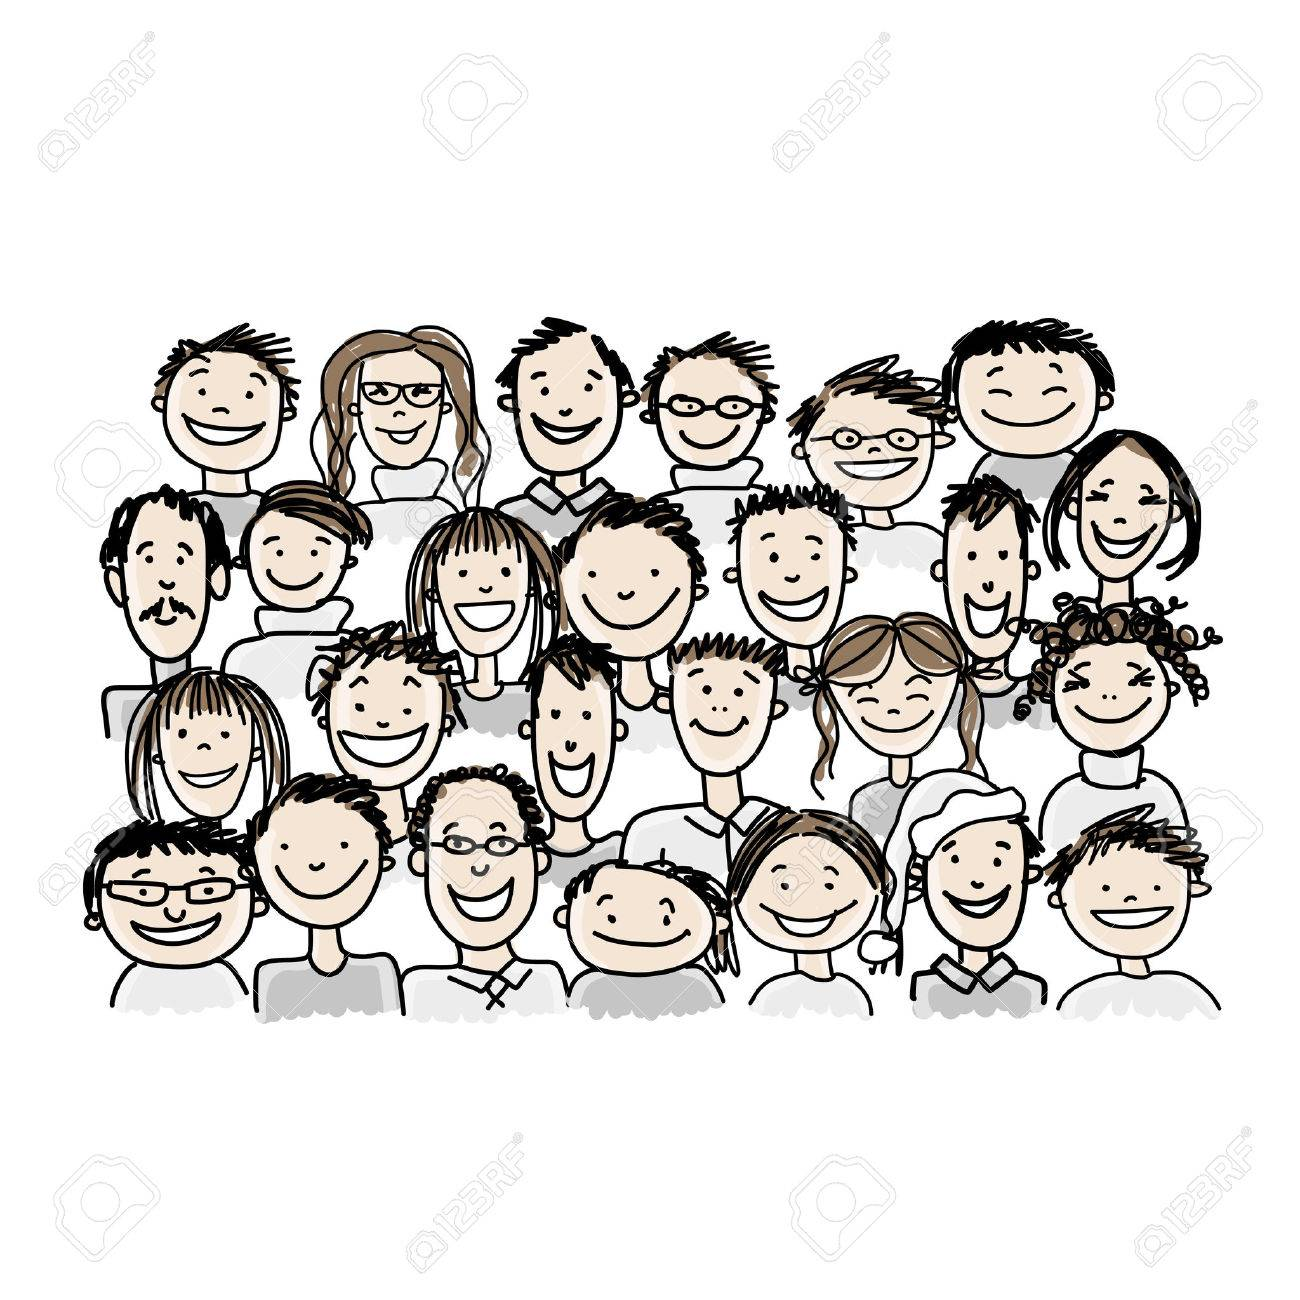 Group of people, sketch for your design Stock Vector - 37038340